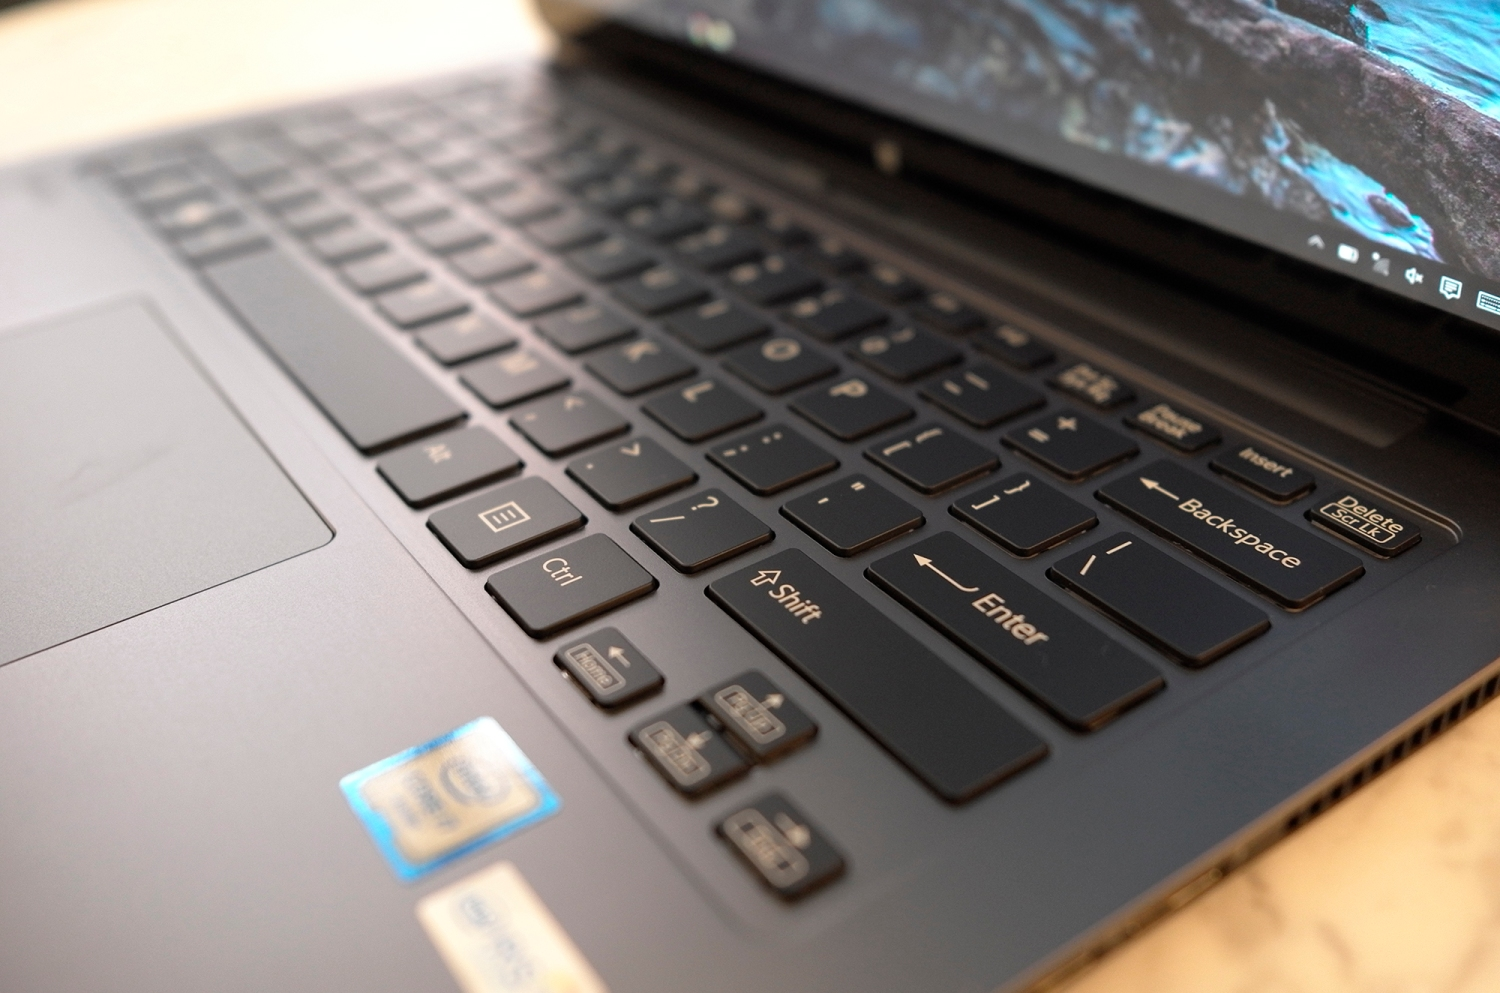 Review: VAIO's Z Flip ultrabook shows little learned